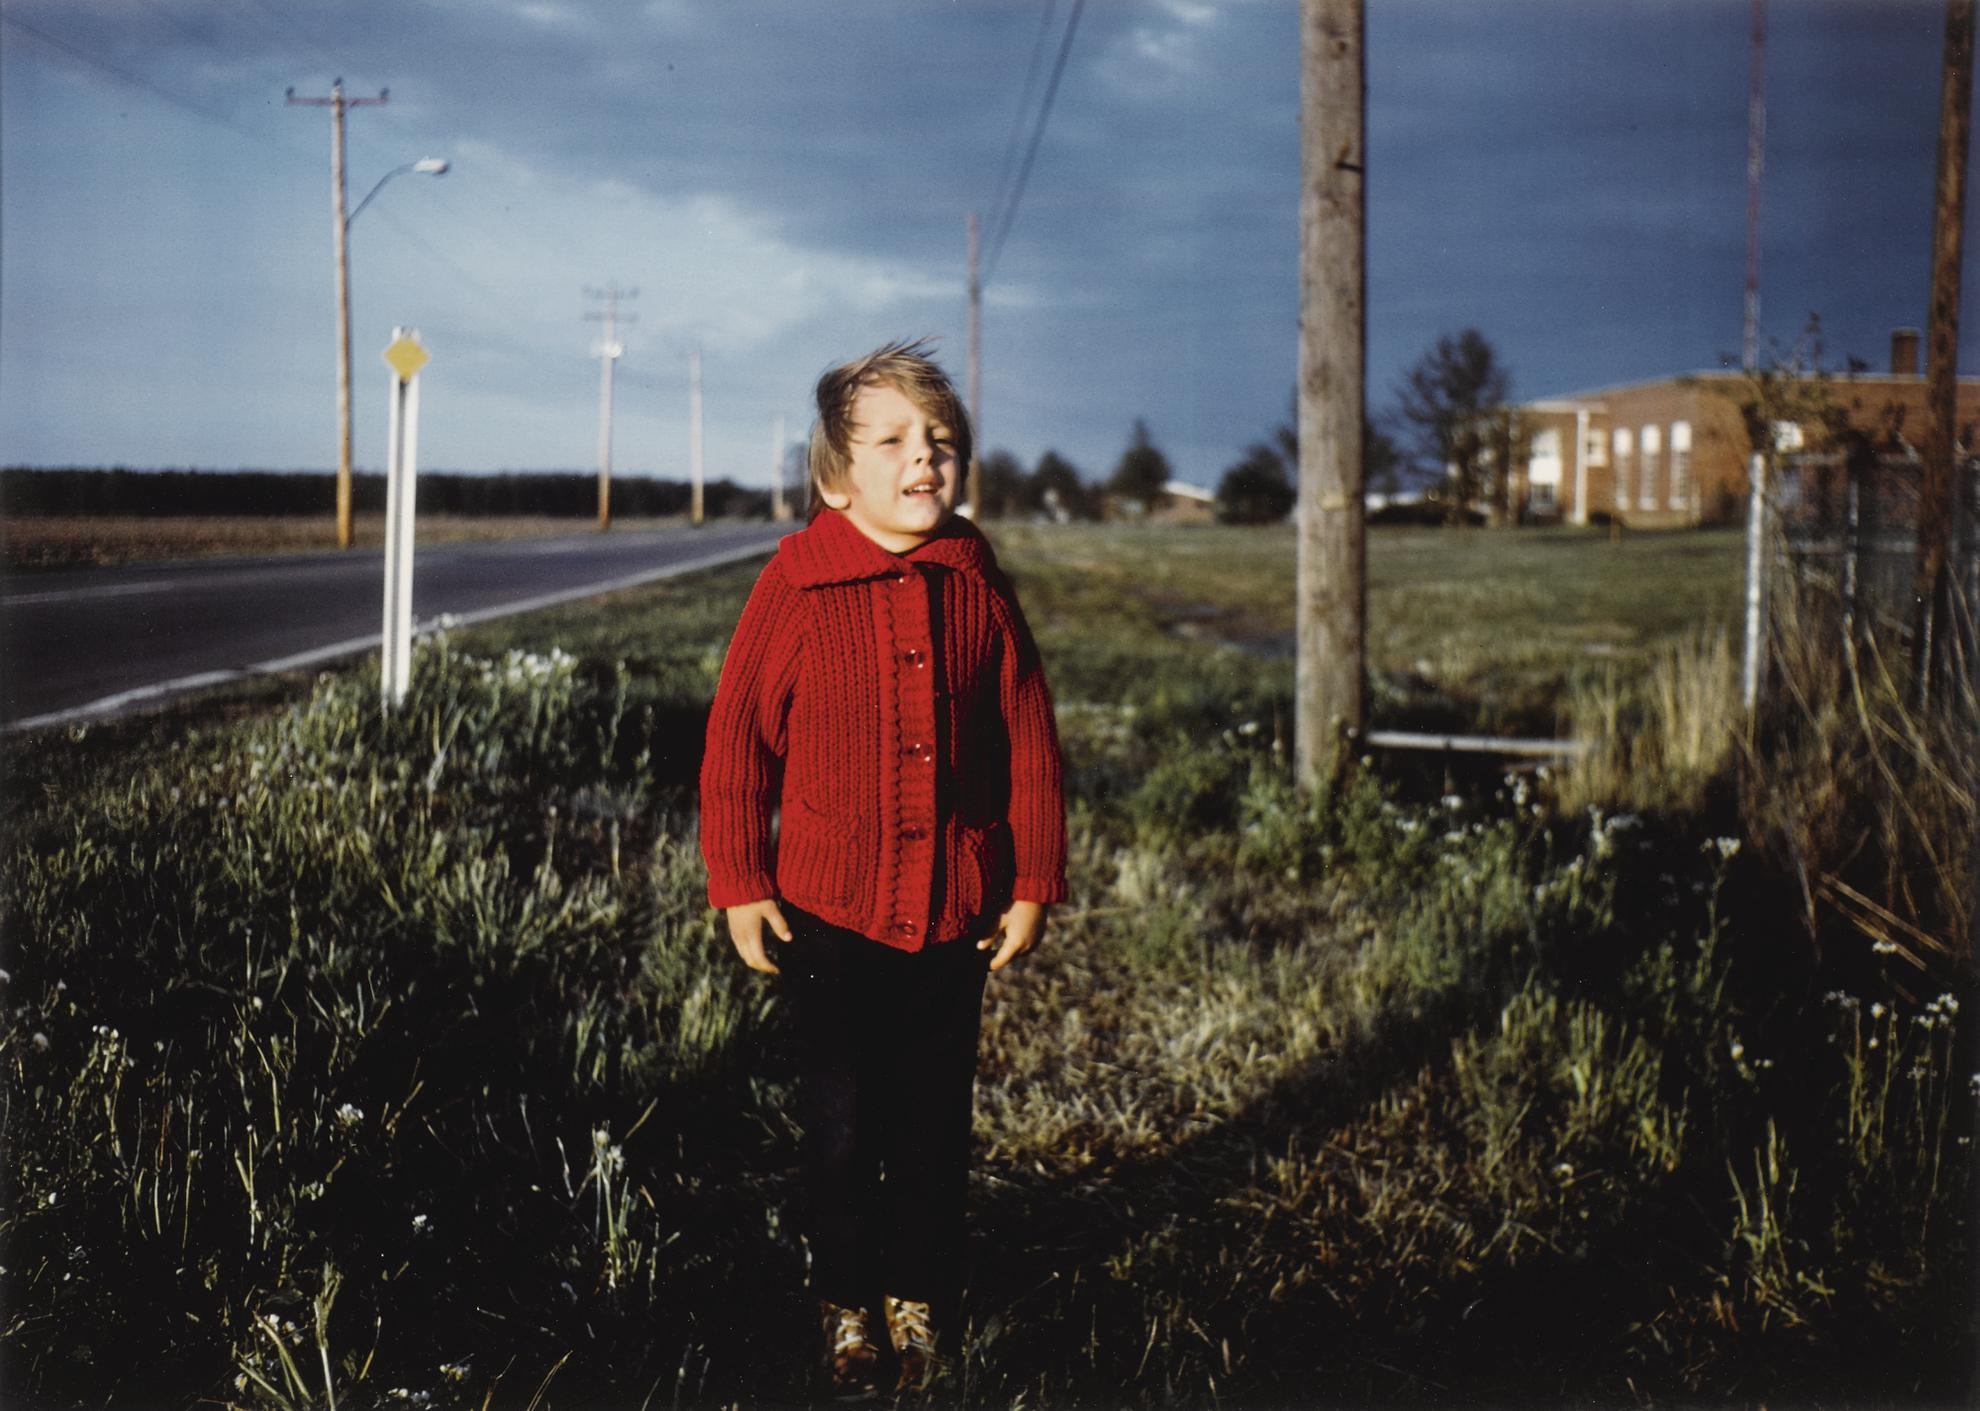 William Eggleston-Untitled (Boy In Red Sweater)-1971